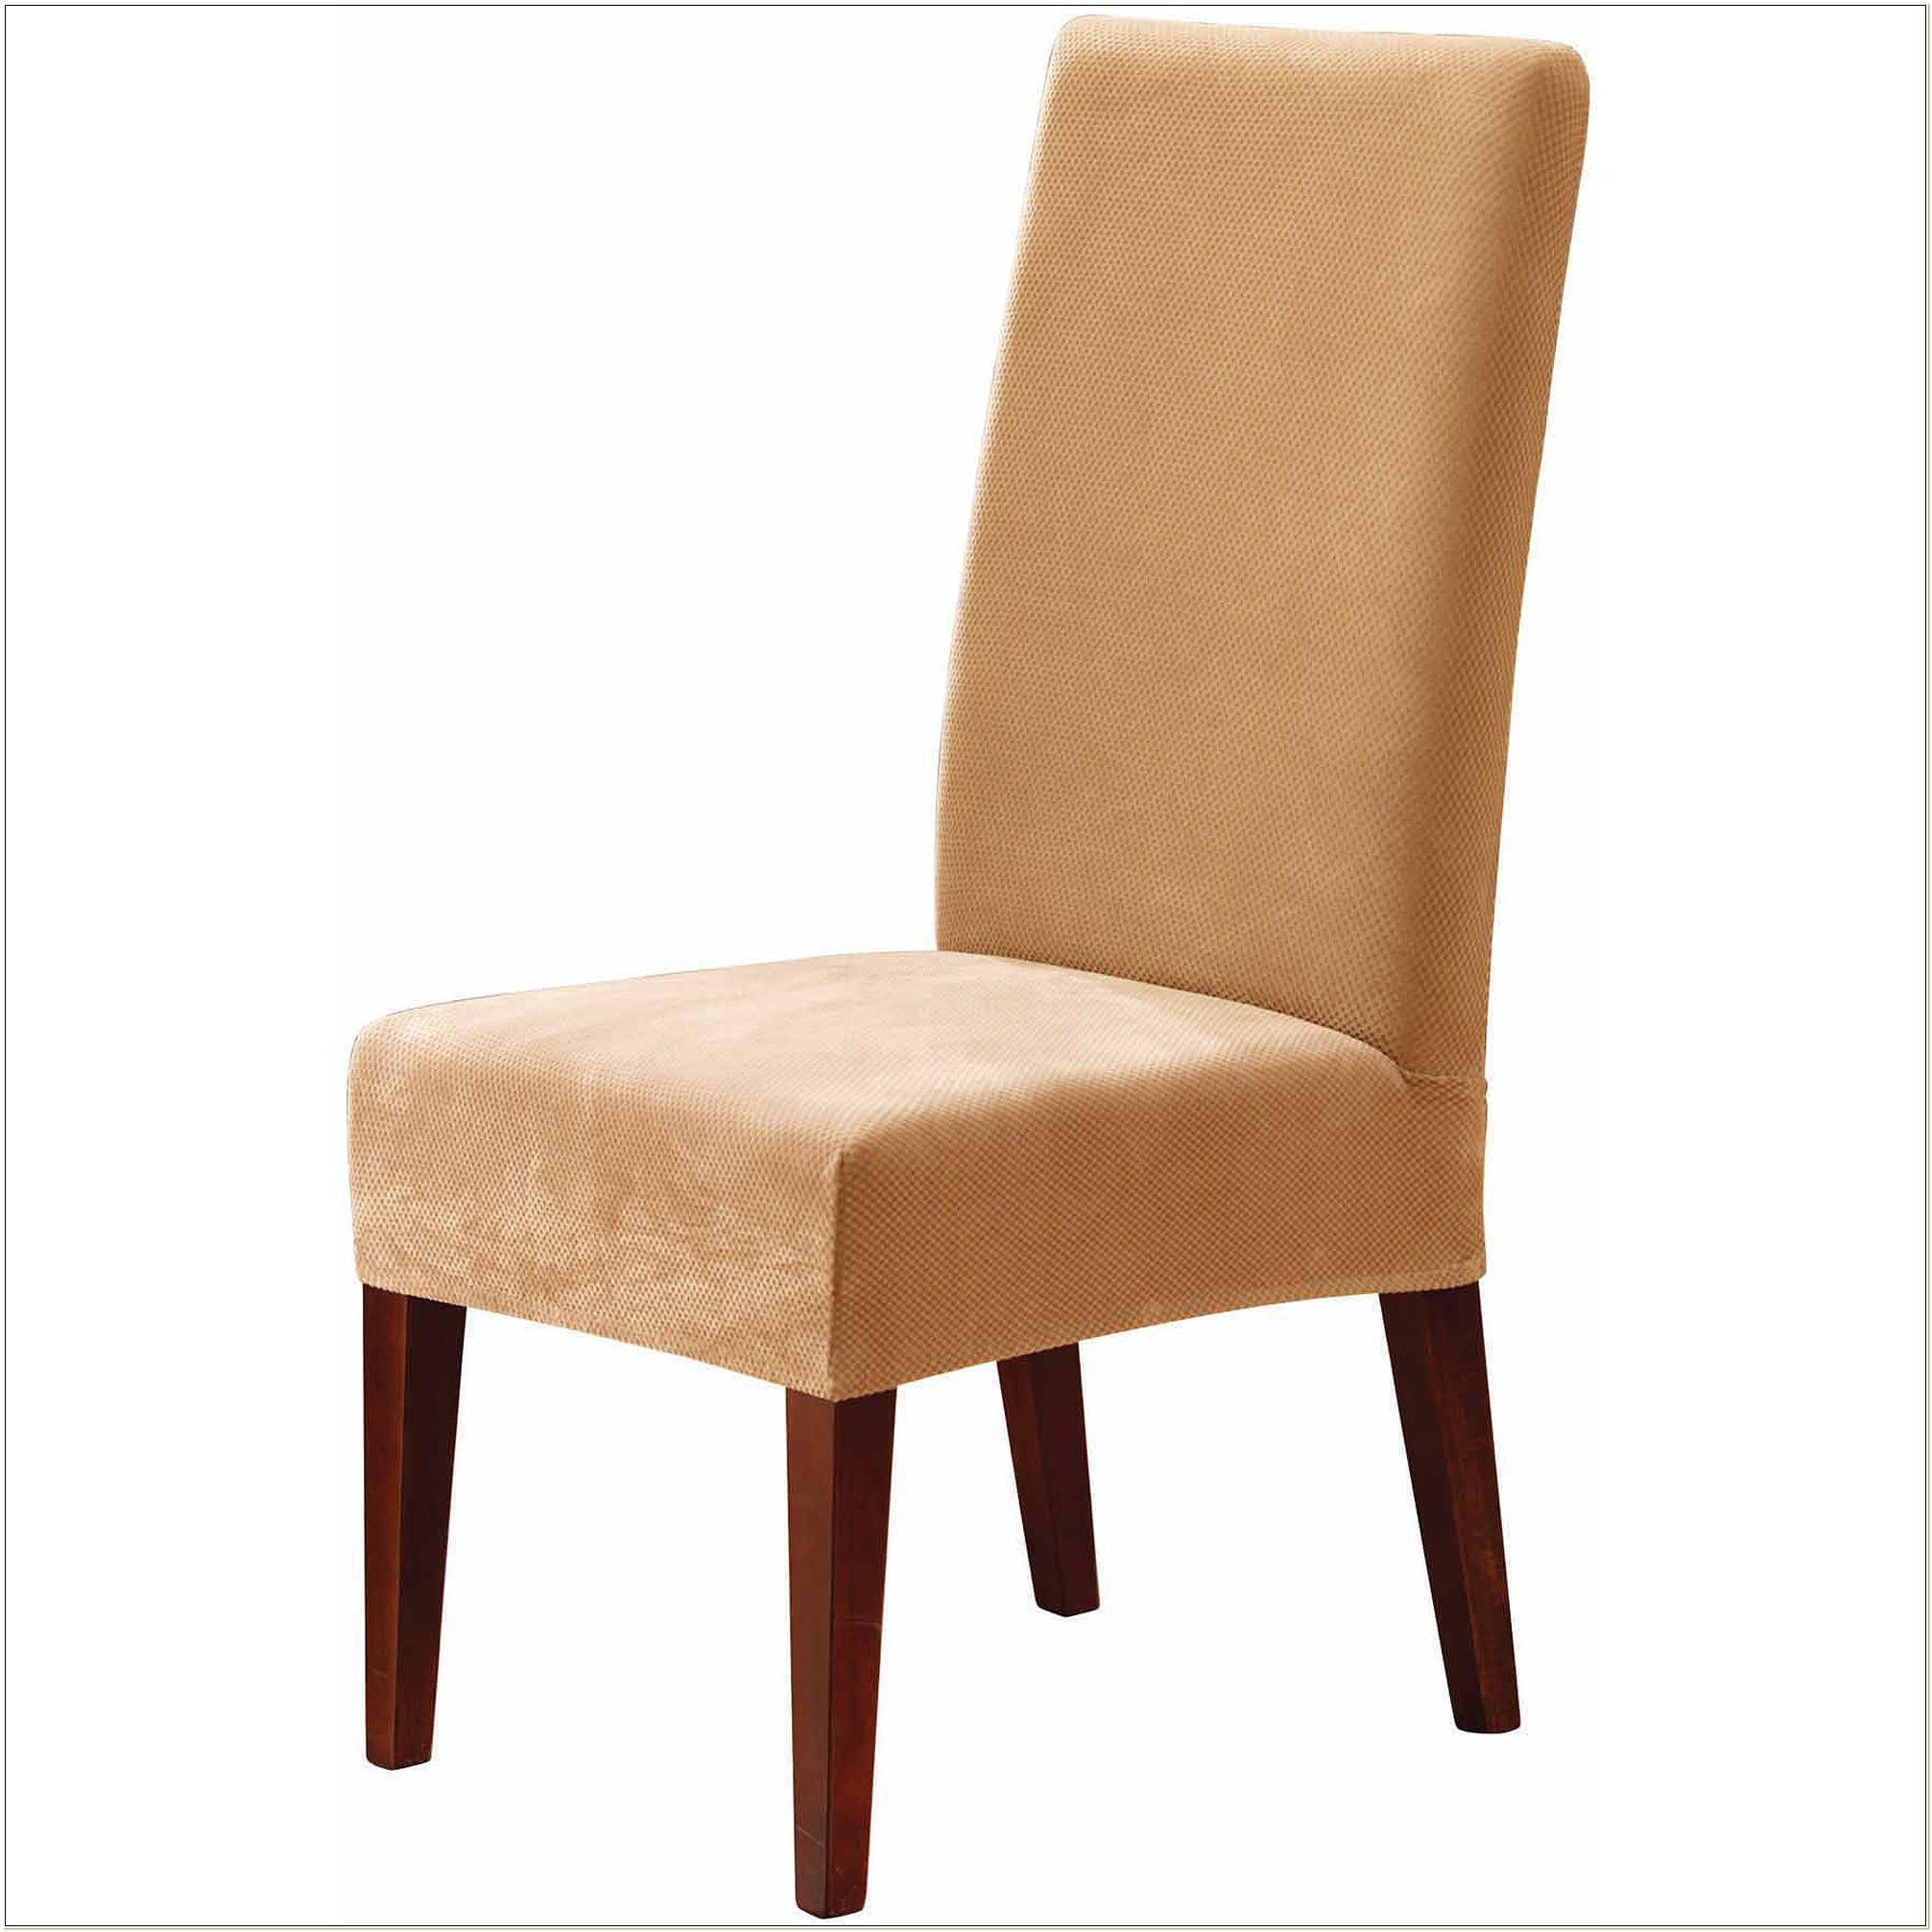 Dining Chair Covers At Walmart